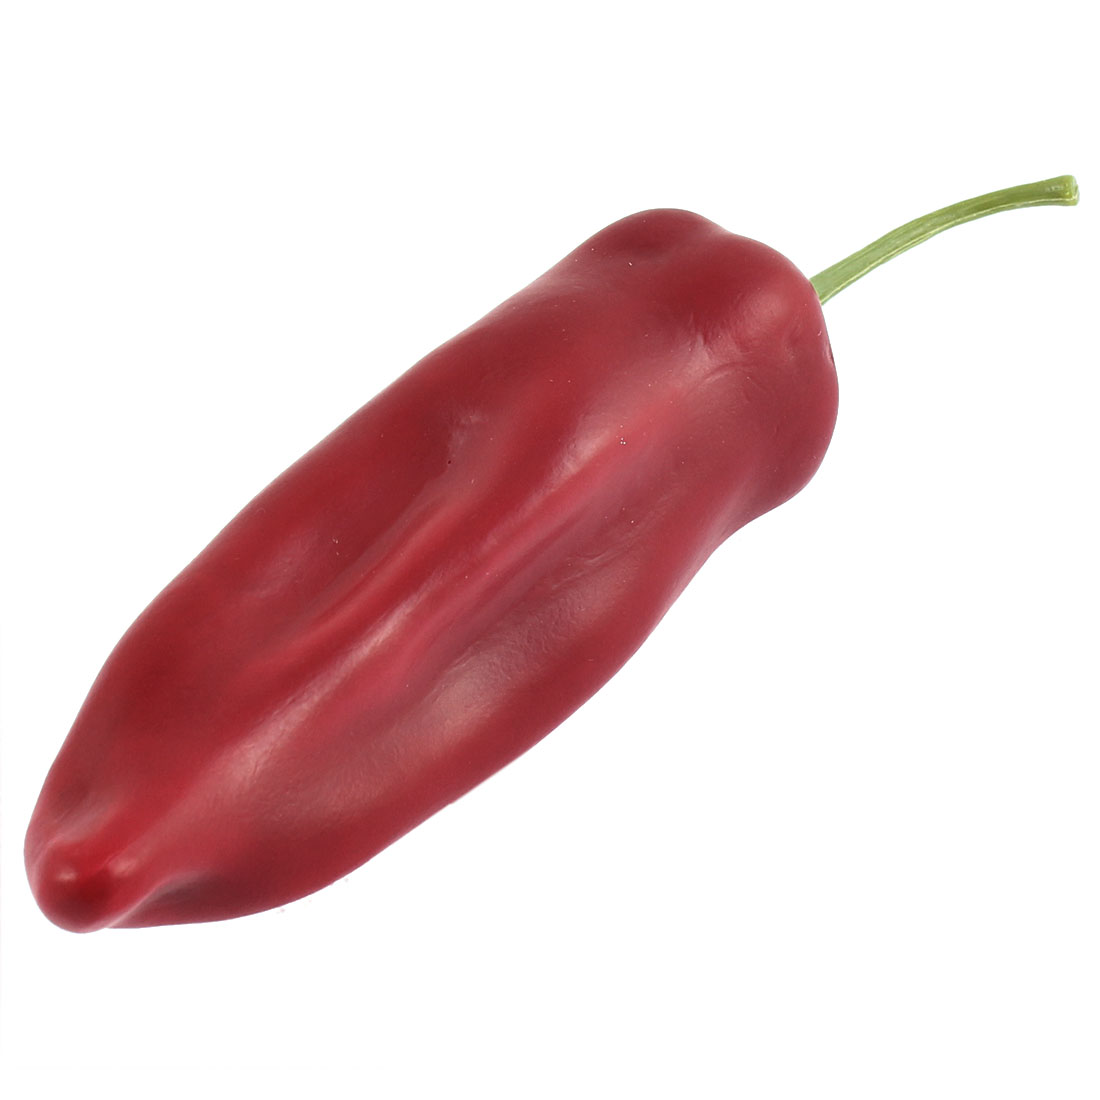 Home Decor Artificial Decorative Vegetables Red Pepper Chili Model Ornament